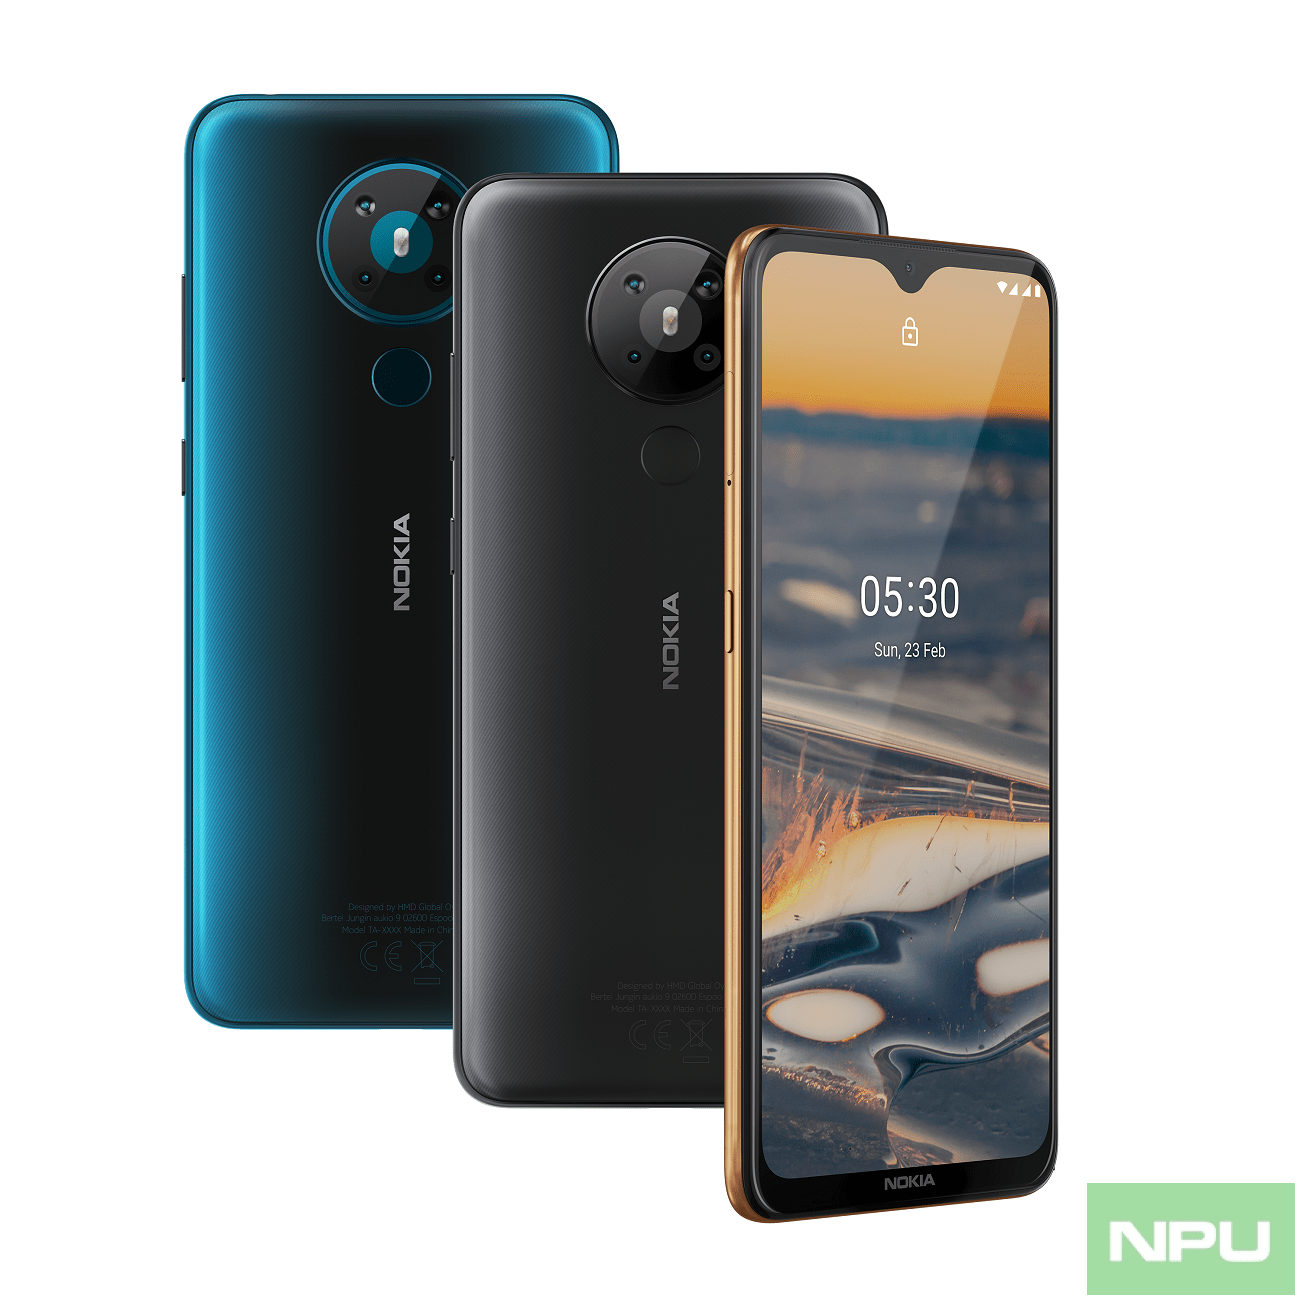 Official Nokia 5.3 Specifications, Price (in India), Release Date